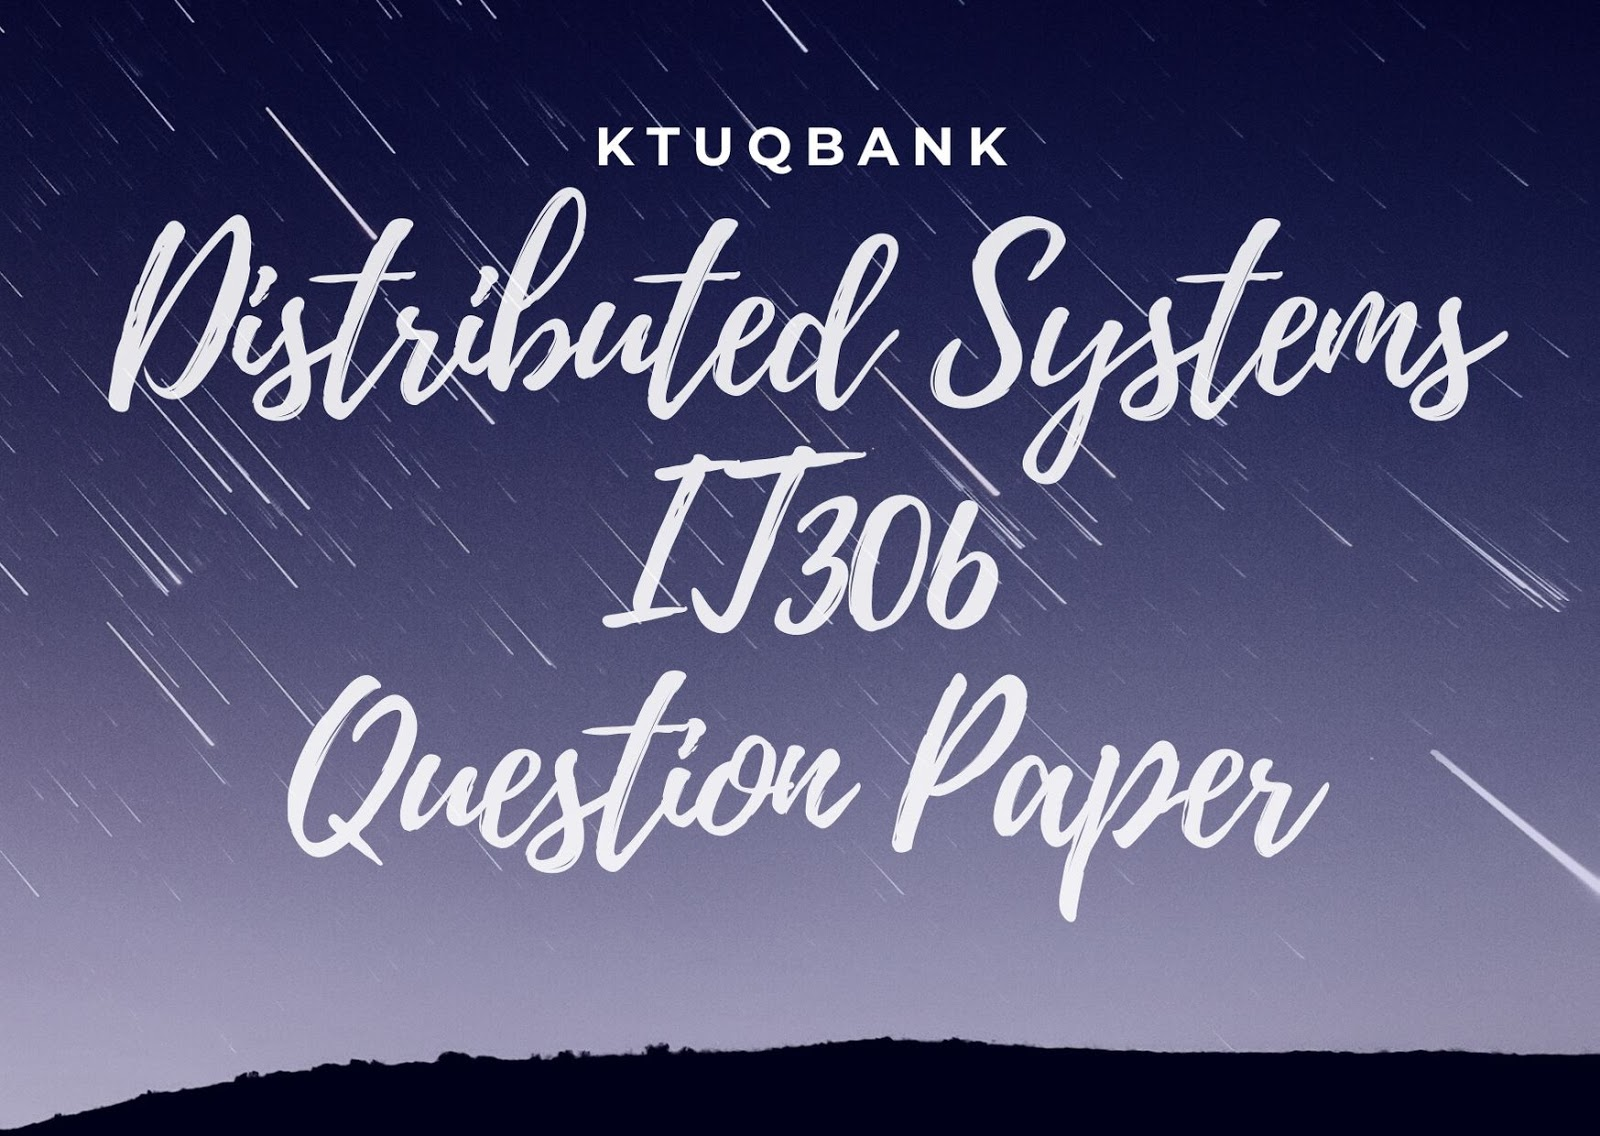 Distributed Systems | IT306 | Question Papers (2015 batch)